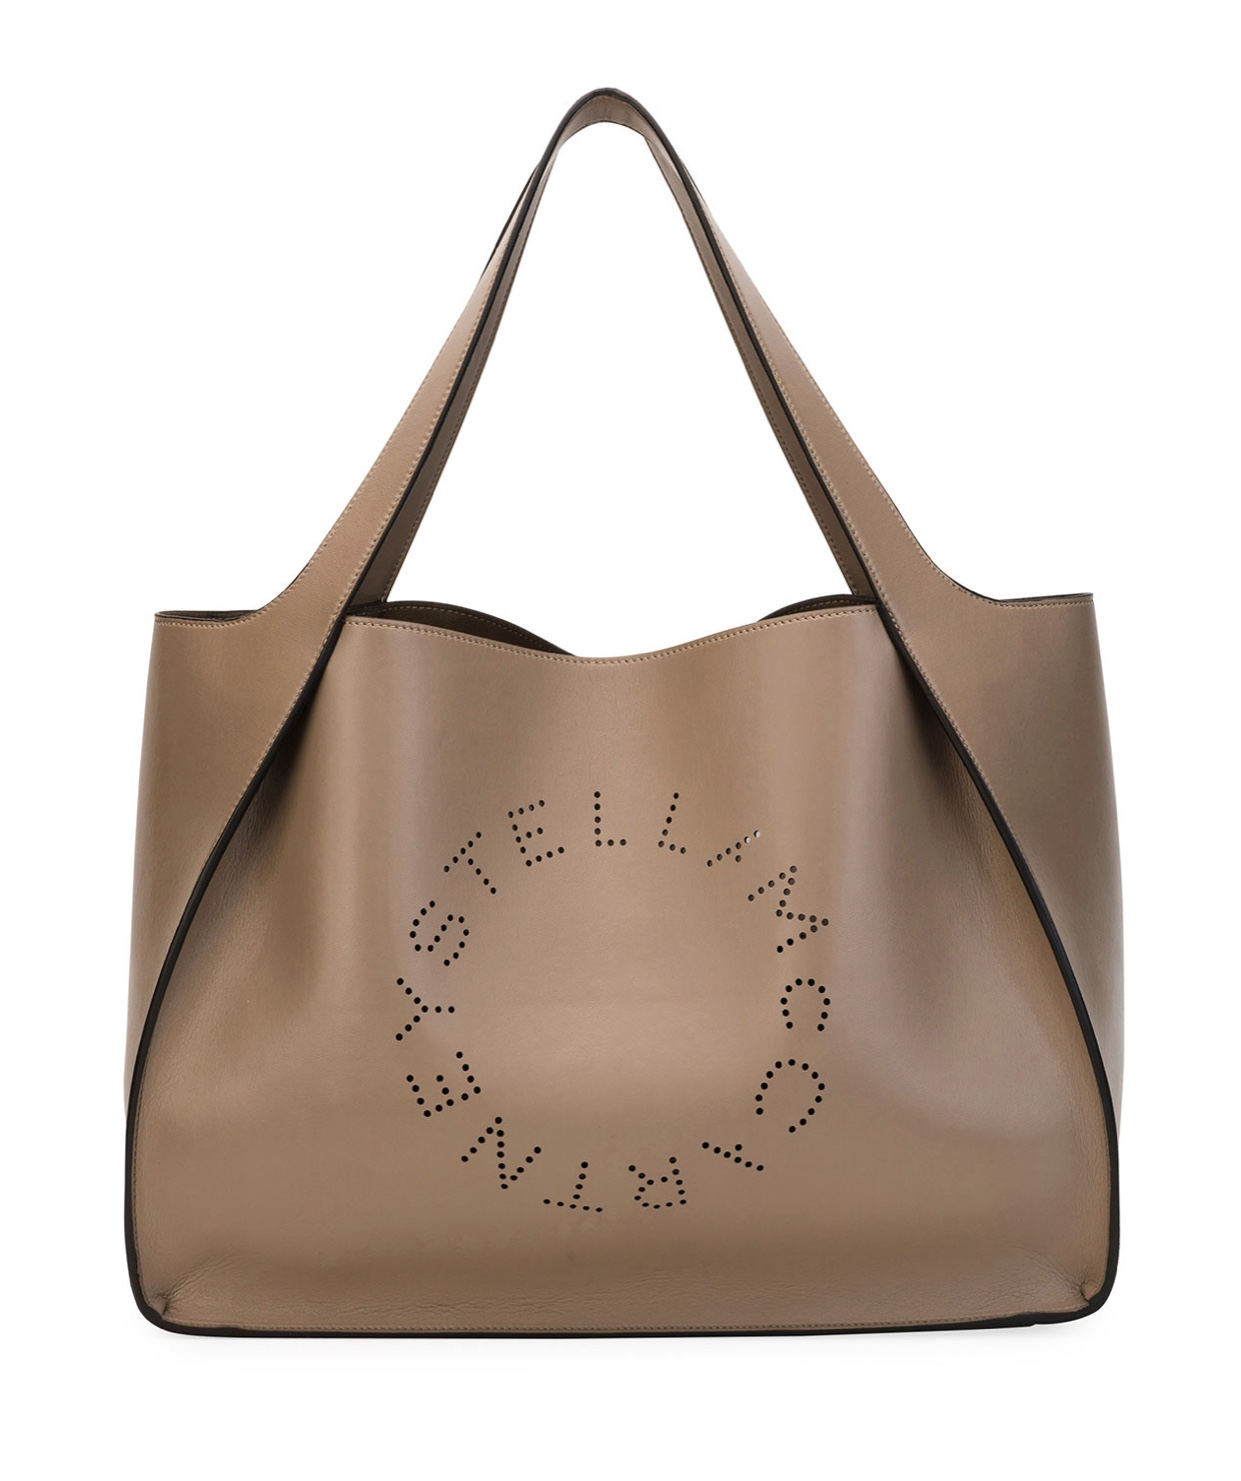 Stella McCartney Alter East West Perforated Tote Bag